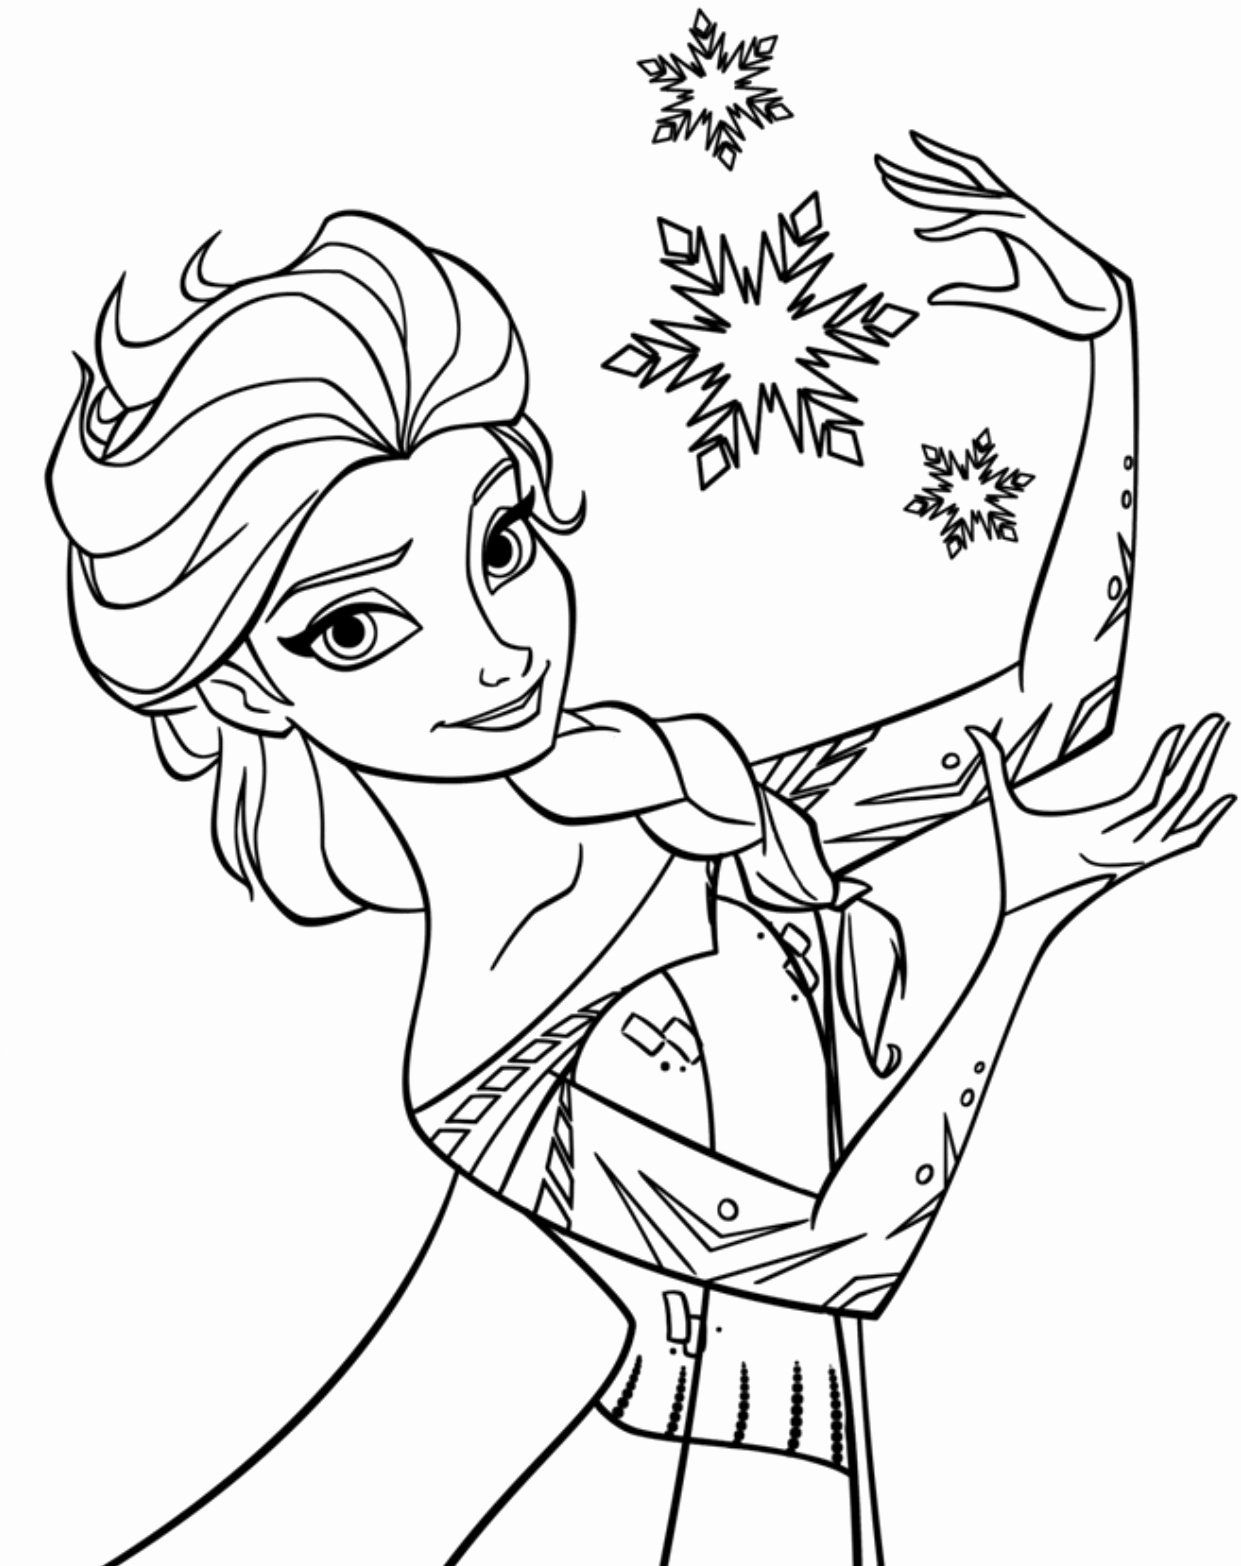 Popular Coloring Pages For Kids Luxury Free Printable Elsa Coloring Pages For Kids Be Elsa Coloring Pages Disney Princess Coloring Pages Frozen Coloring Sheets